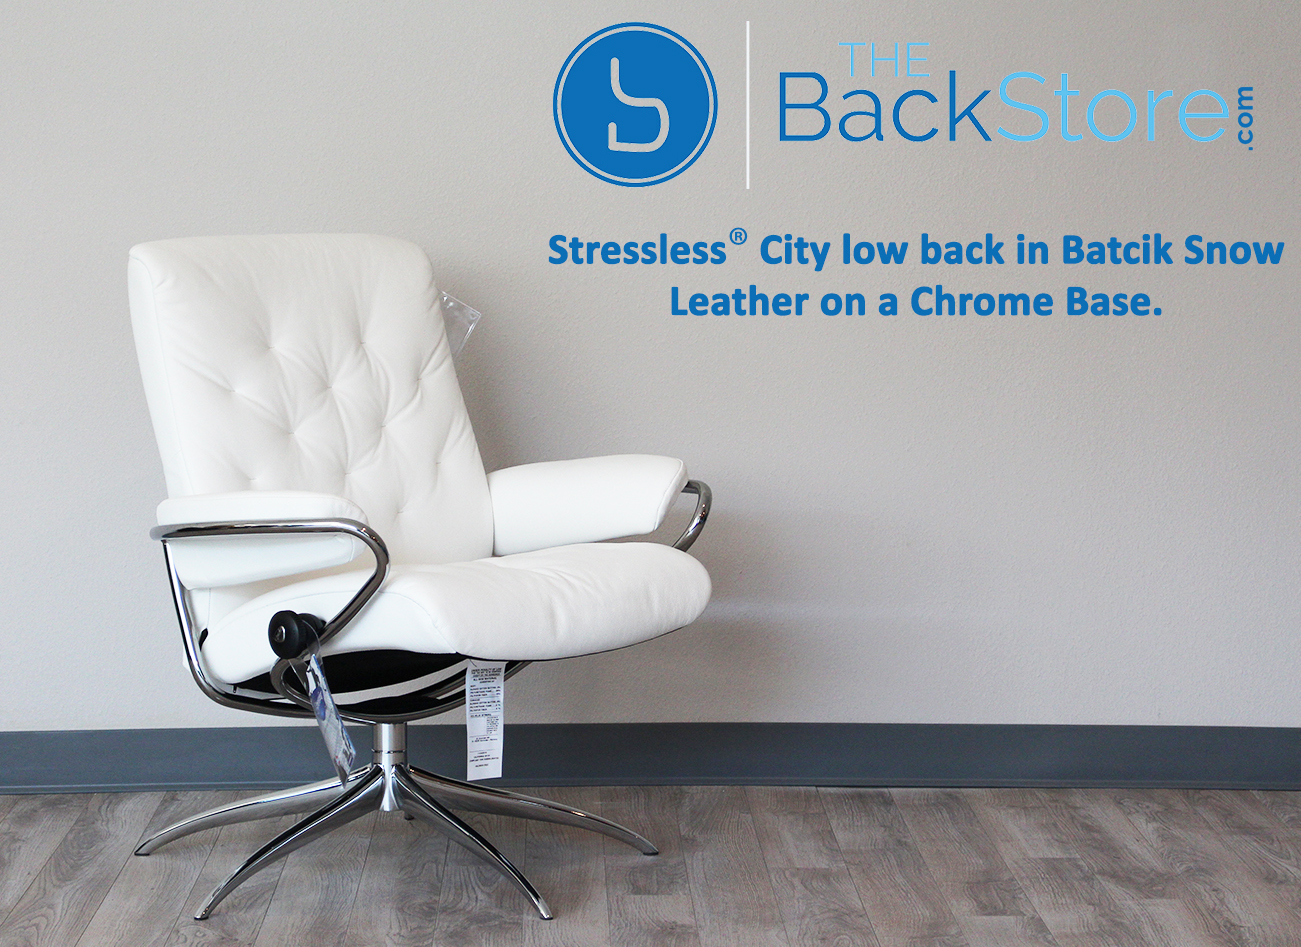 stressless city low back batick snow chrome base leather recliner